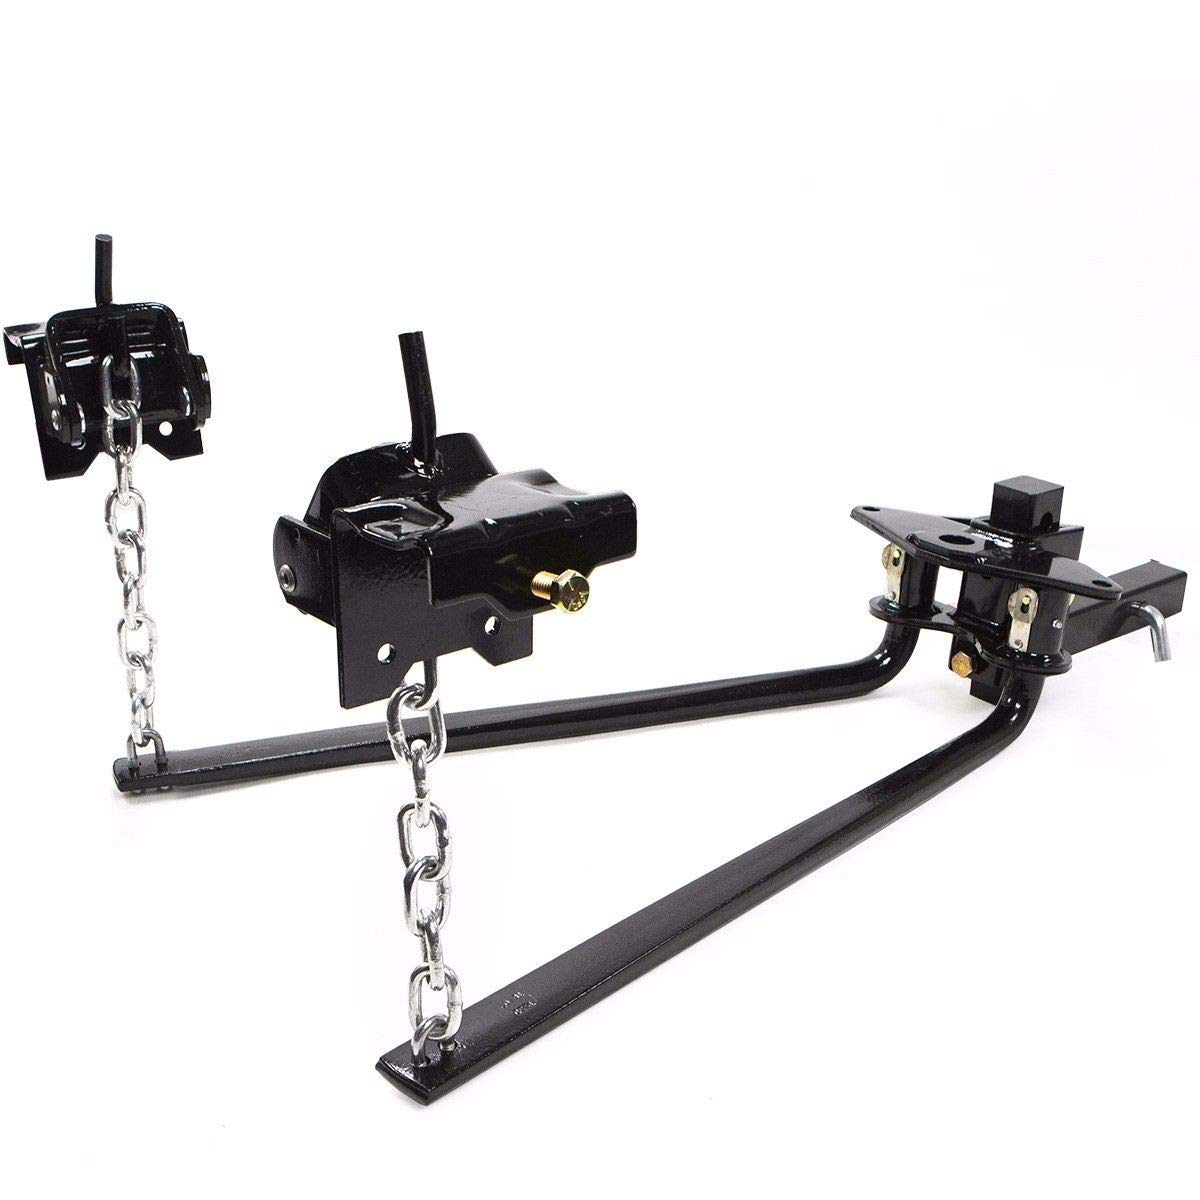 9TRADING Weight Distribution Equalizer sway Control Trailer Towing Hitch bar 10000 lb New